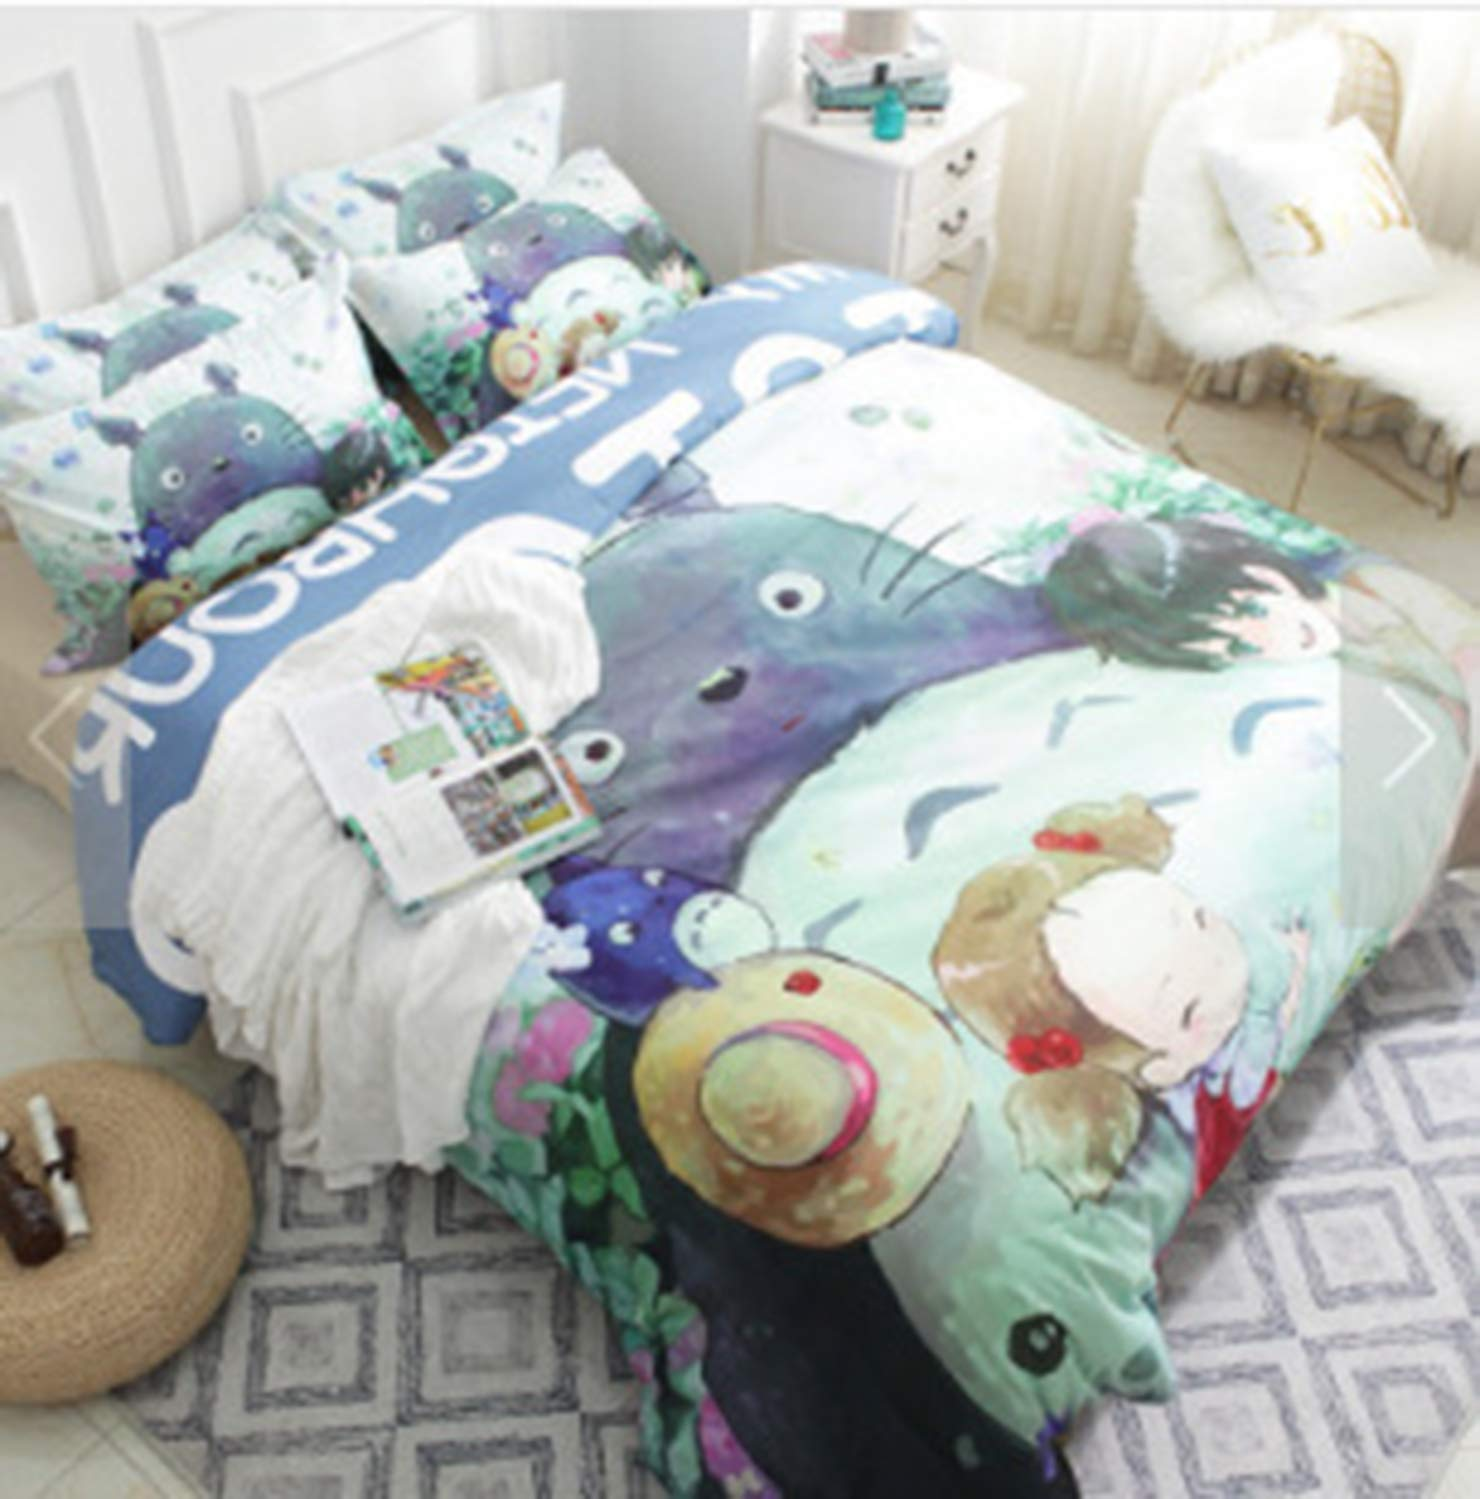 Yicool My Neighbor Totoro Bedding Cover Set Queen Size 3 Piece Cute Cartoon Polyester Blend Quilt Cover and Pillowcases (Comforter and Sheet not Included)